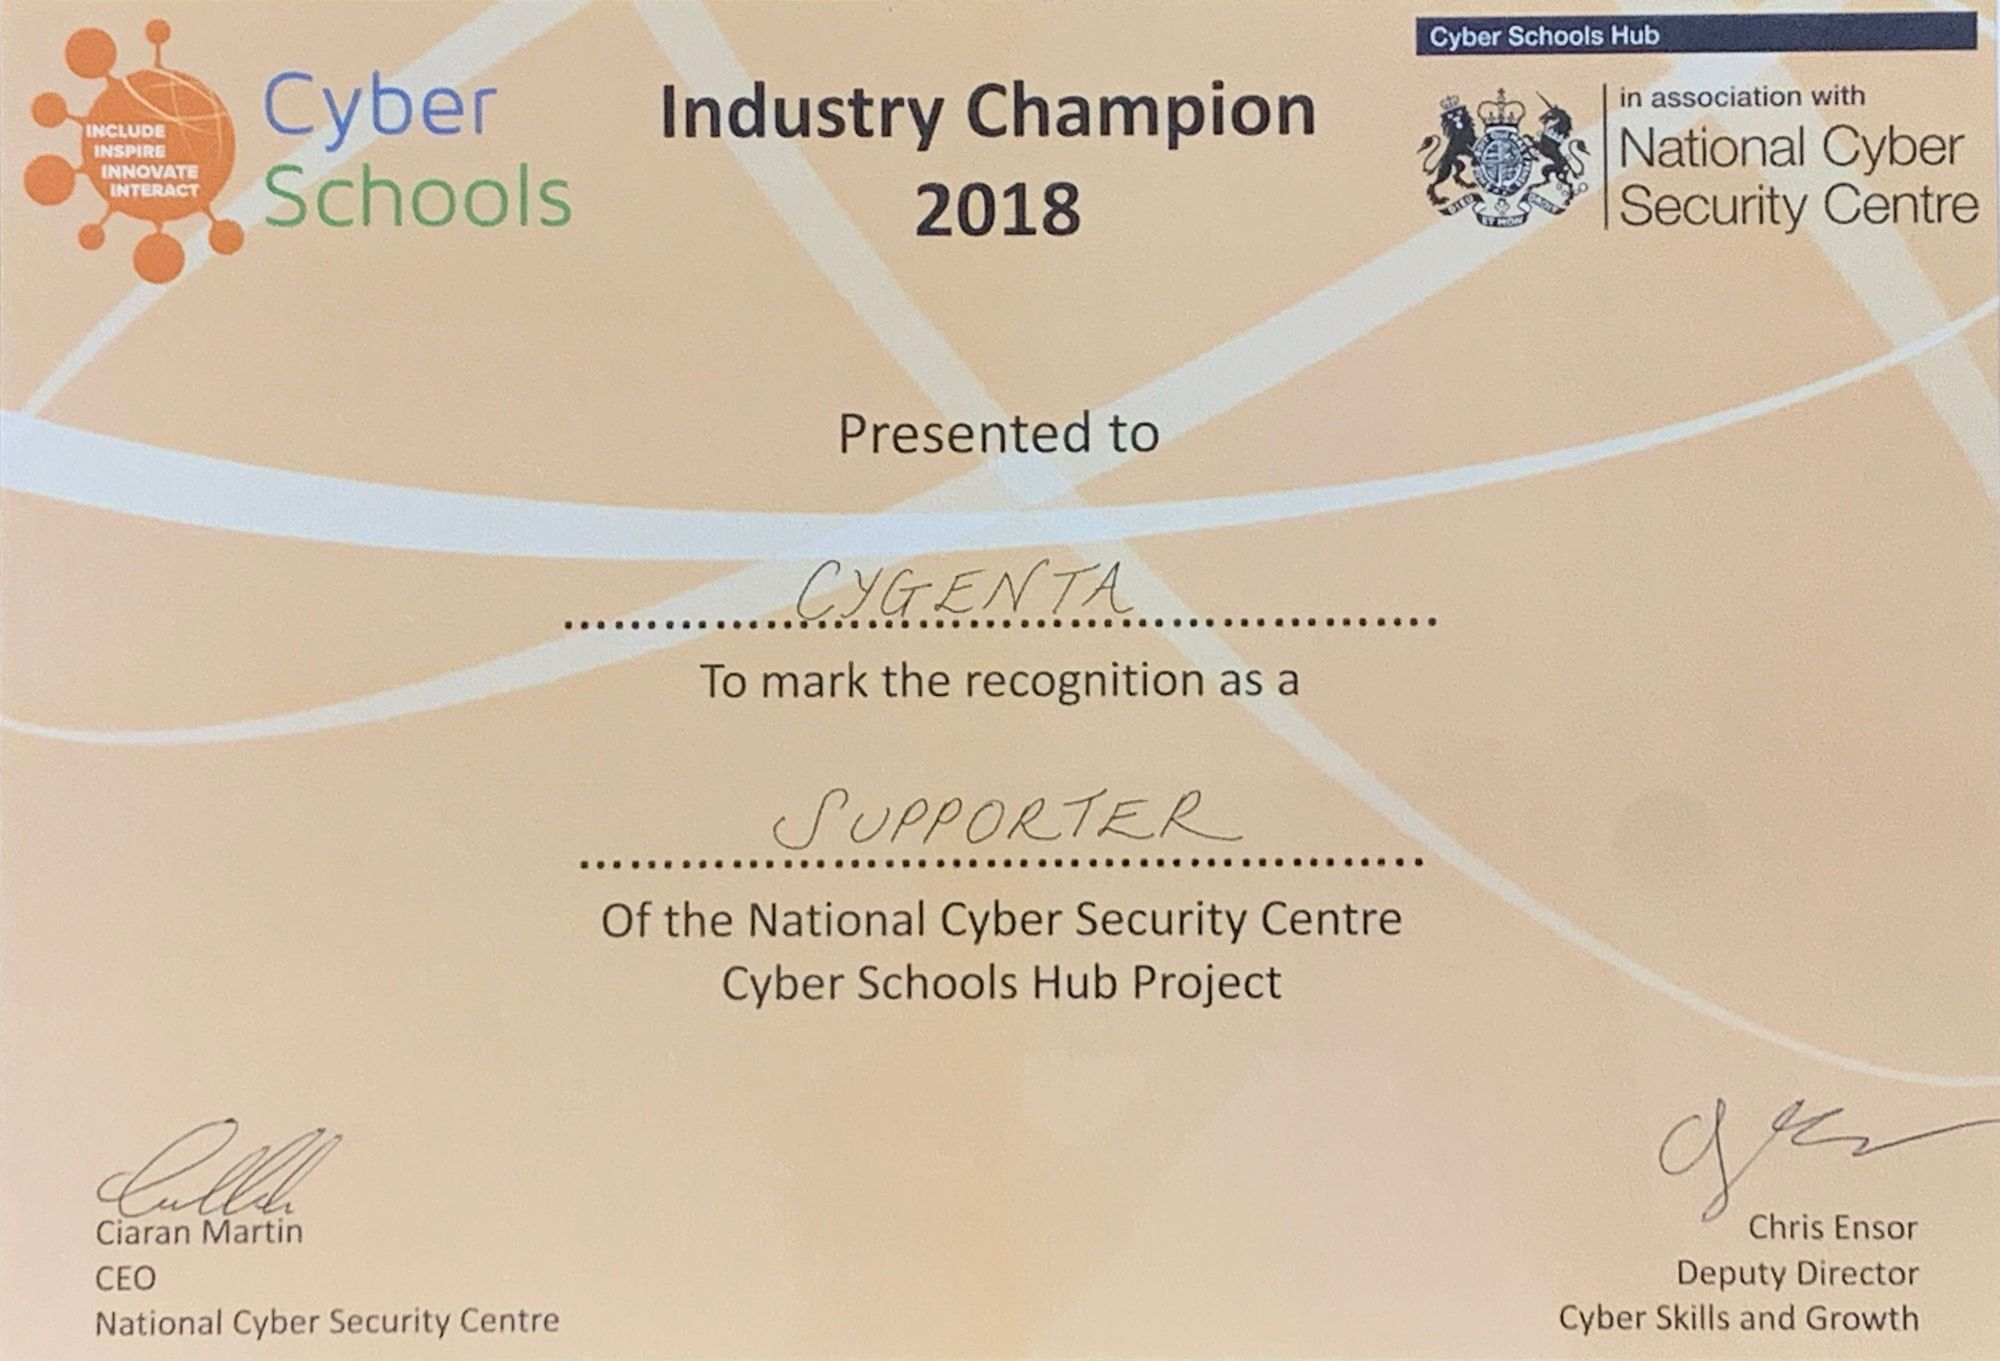 National Cyber Security Centre Award